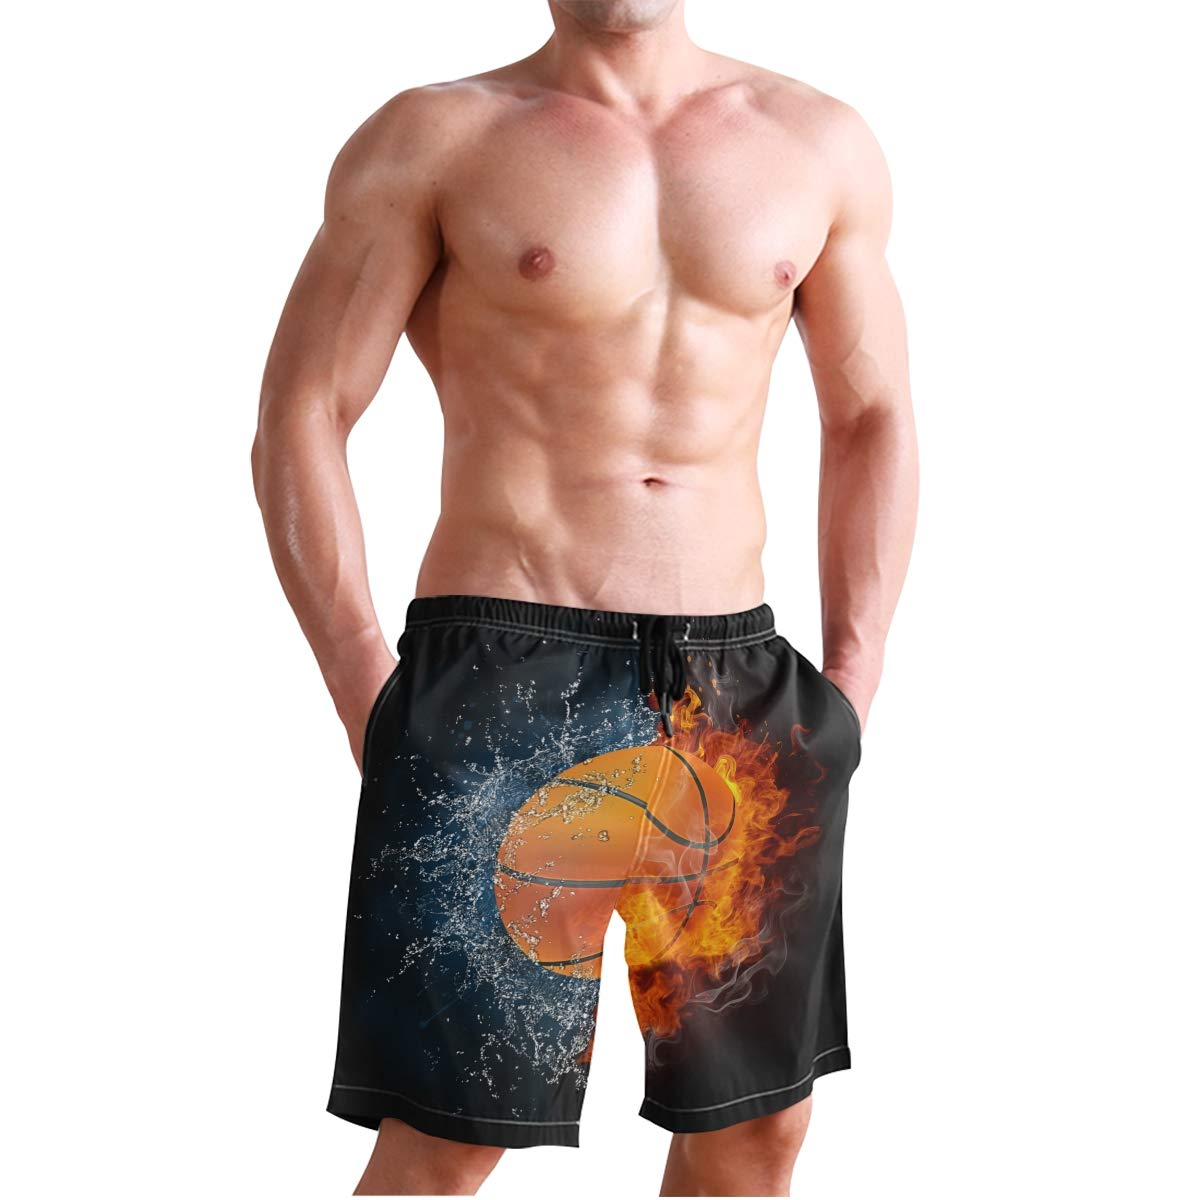 KUWT Mens Swim Trunks Sport Basketball Quick Dry Beach Shorts Summer Surf Board Shorts